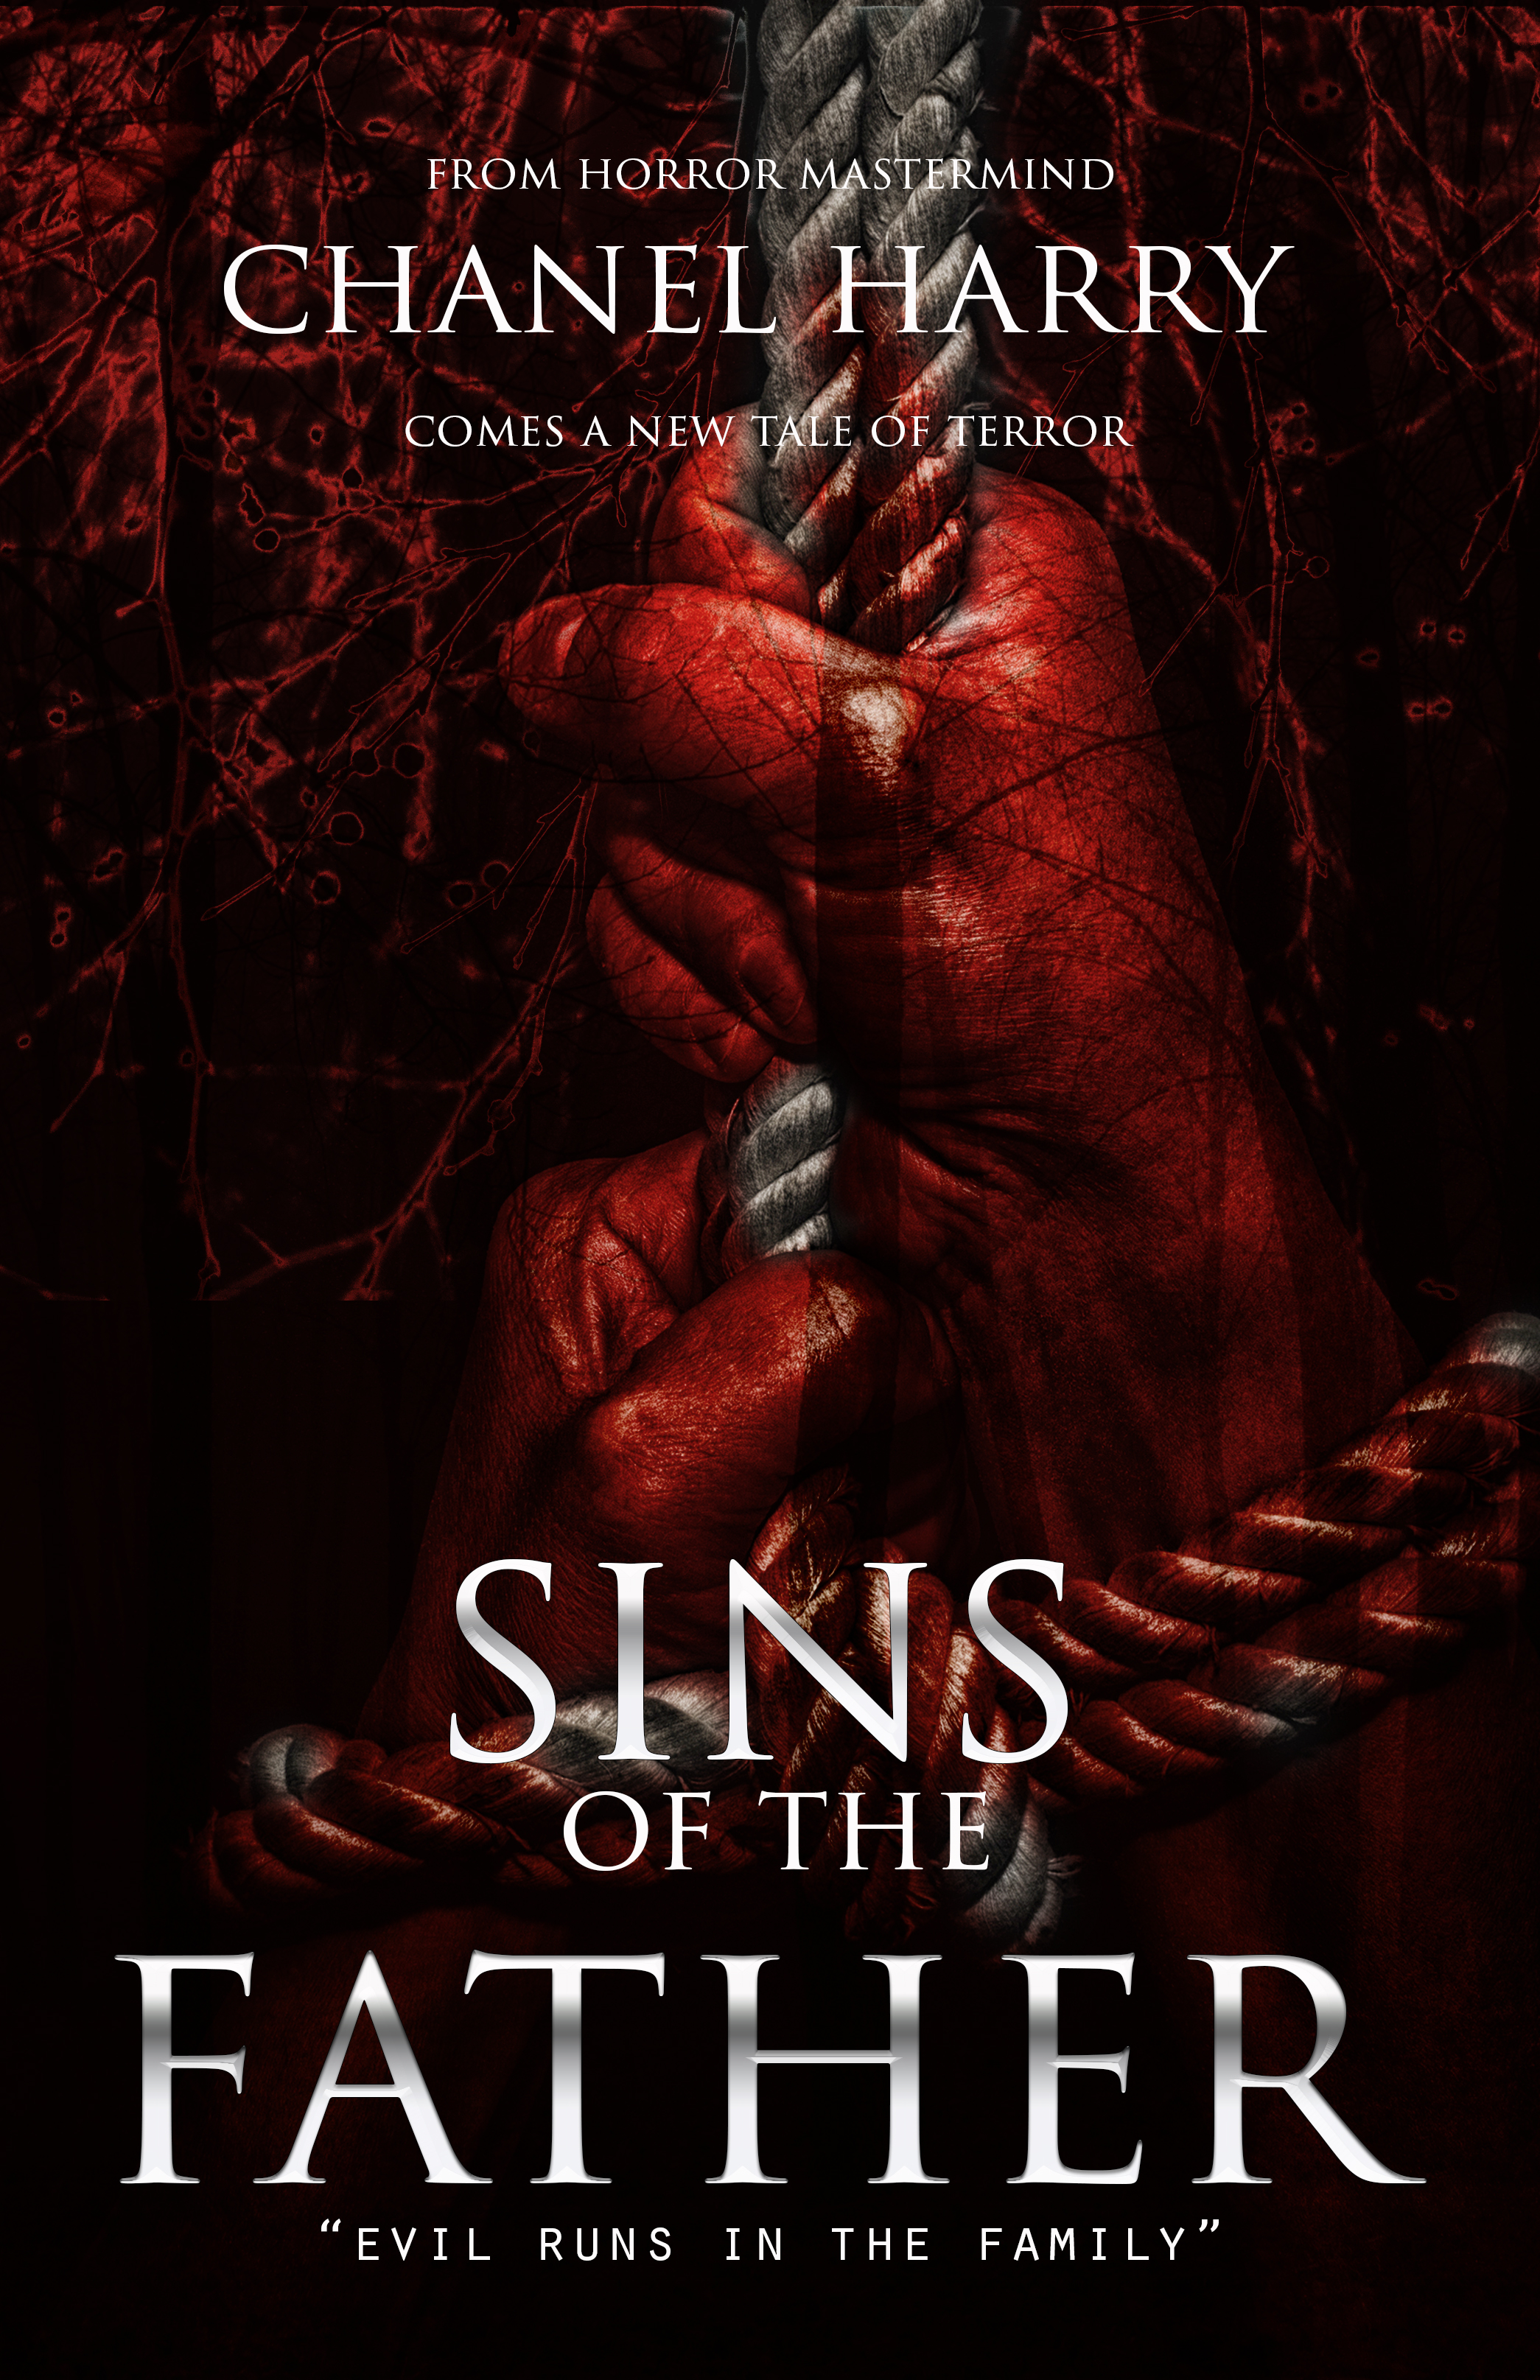 sins of the father first concept